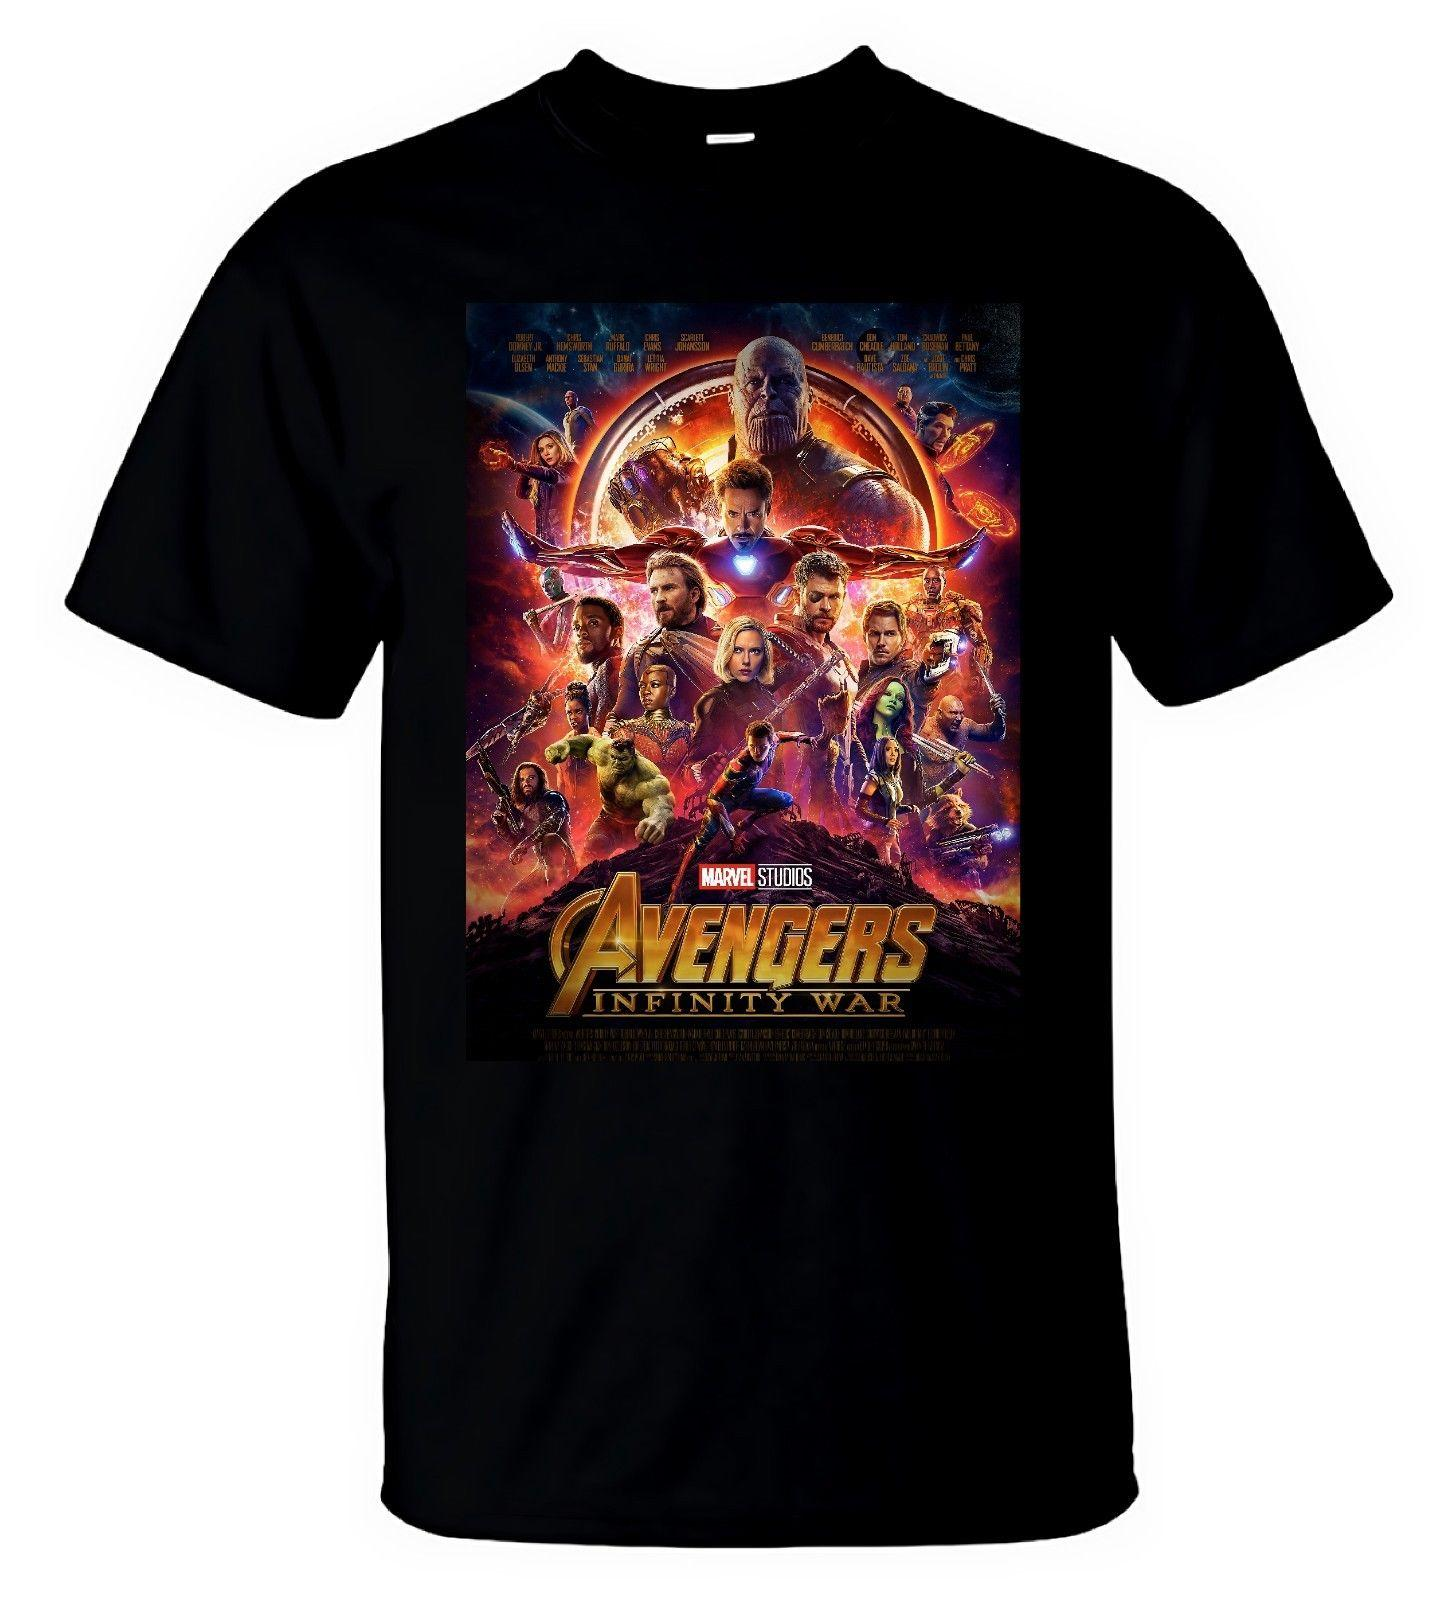 72ee5074f Marvel Avengers Infinity War T Shirt Gauntlet Thanos Captain America Men T  Shirt Cool Shirts Designs Pt Shirts From Designtshirts201806, $13.91|  DHgate.Com